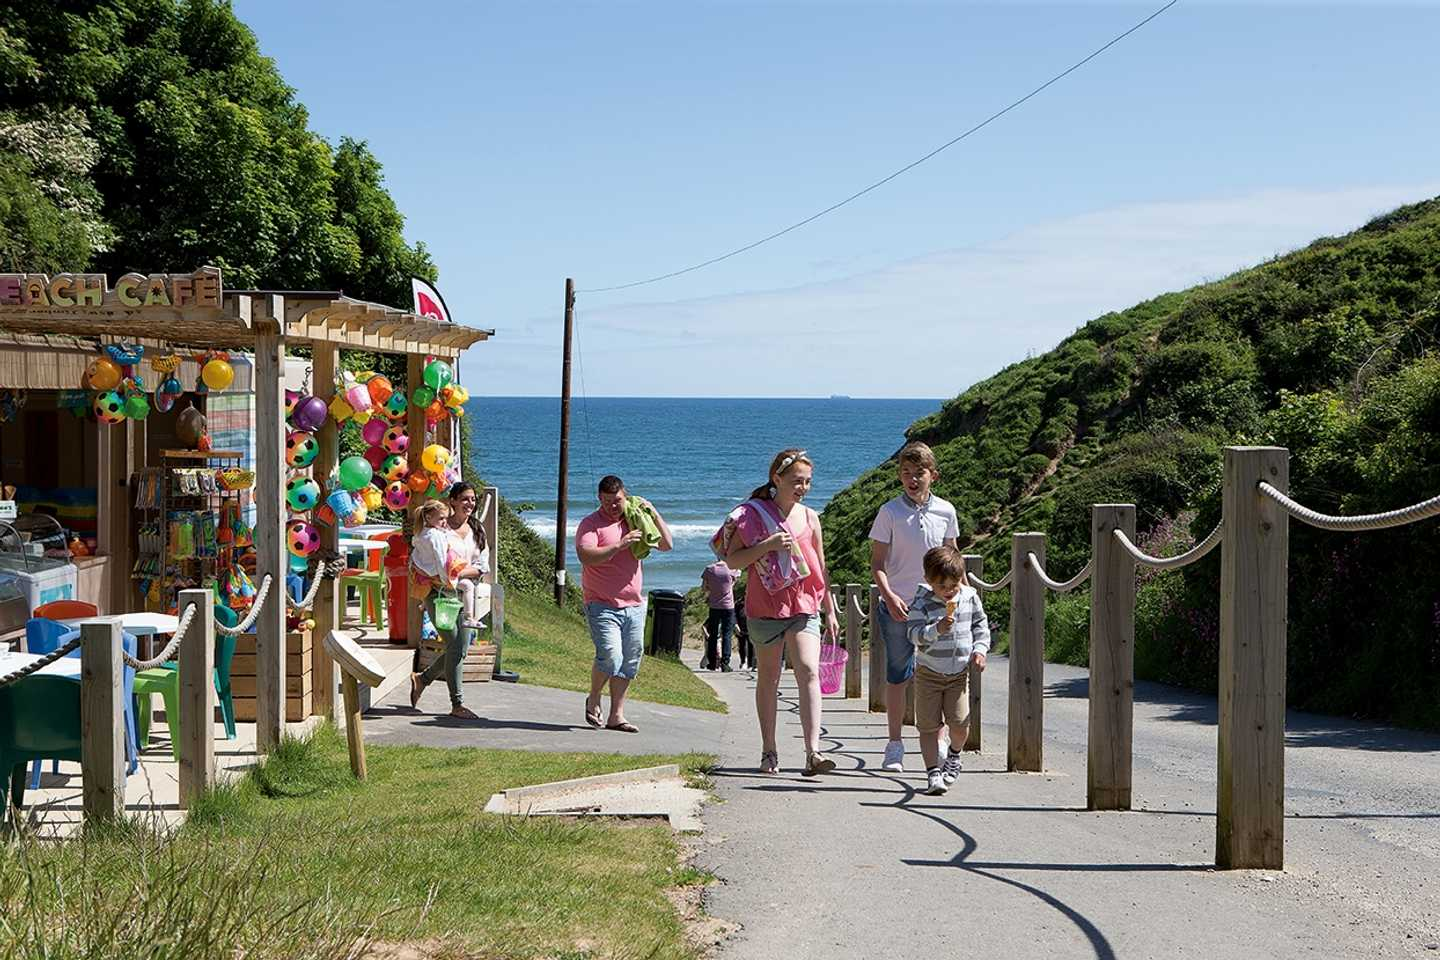 Guests buying ice-creams and bucket and spades at the Beach Cafe